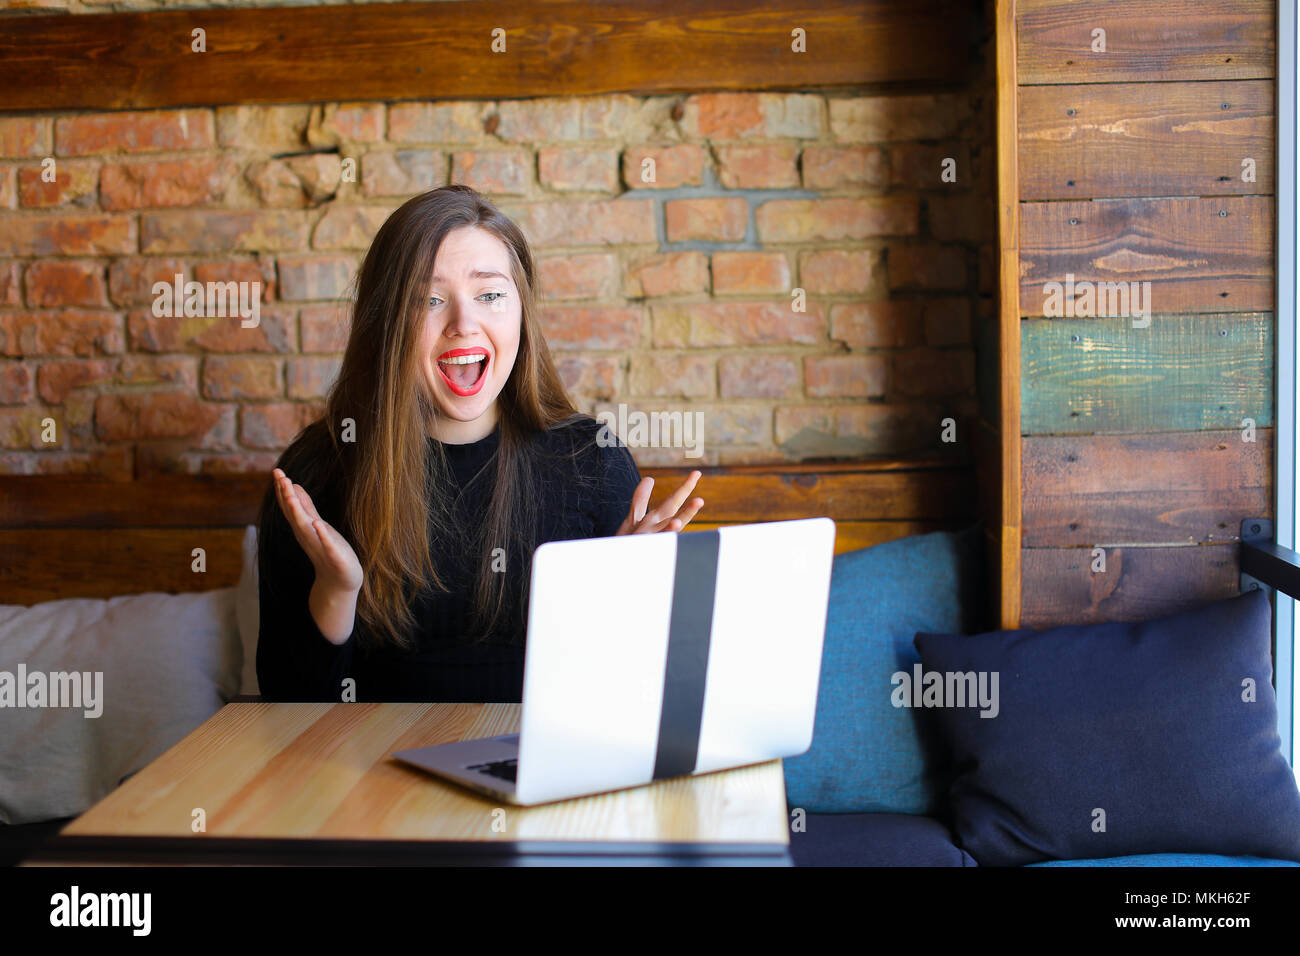 Shocked and disappointed female person using laptop and sitting at cafe. - Stock Image